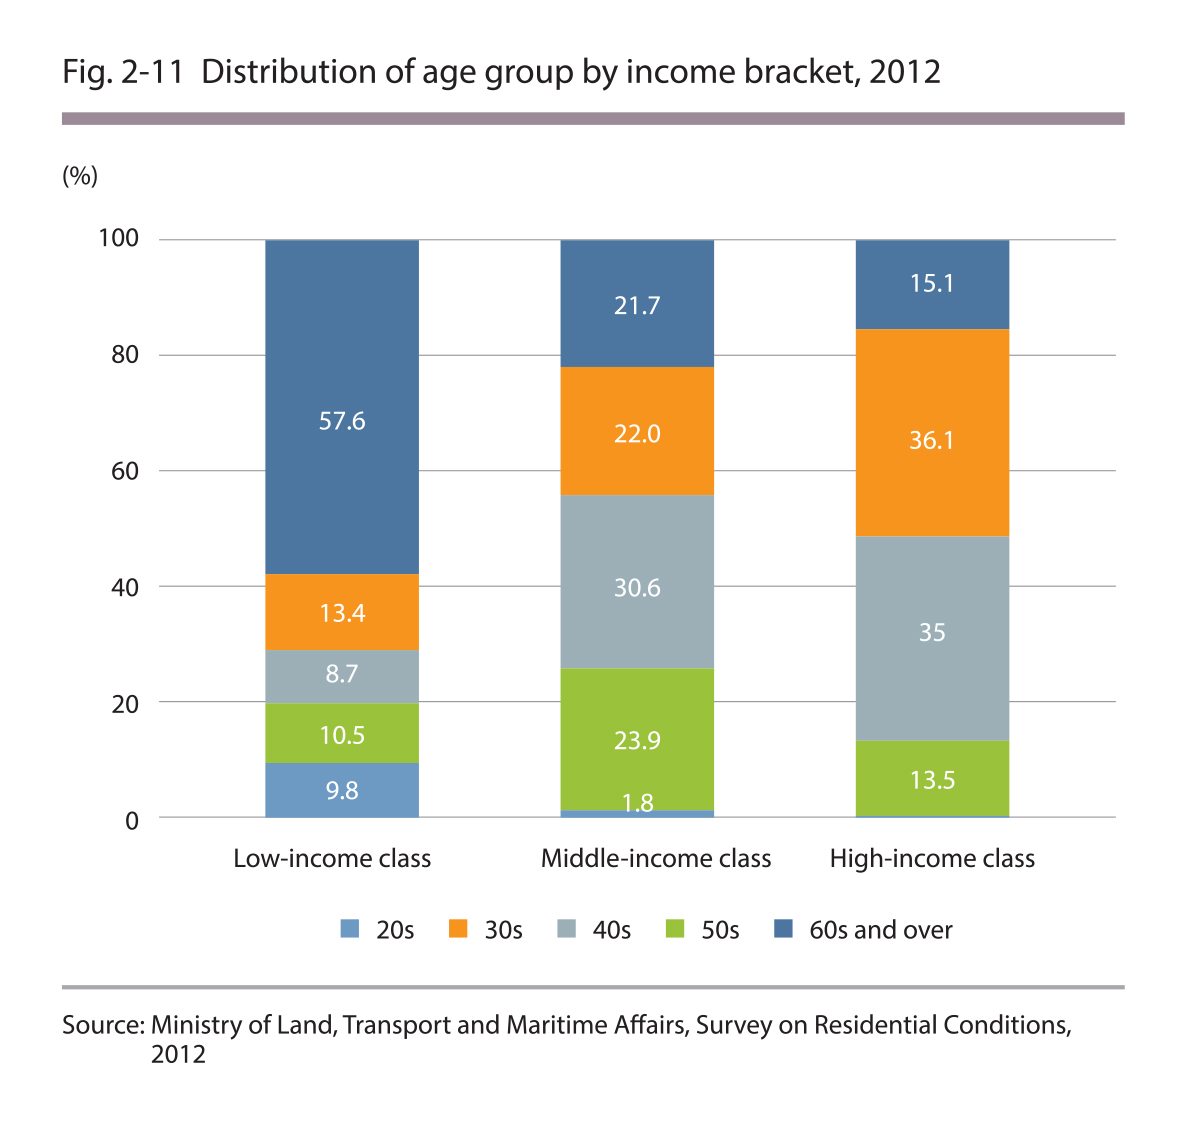 Distribution of age group by income bracket, 2012